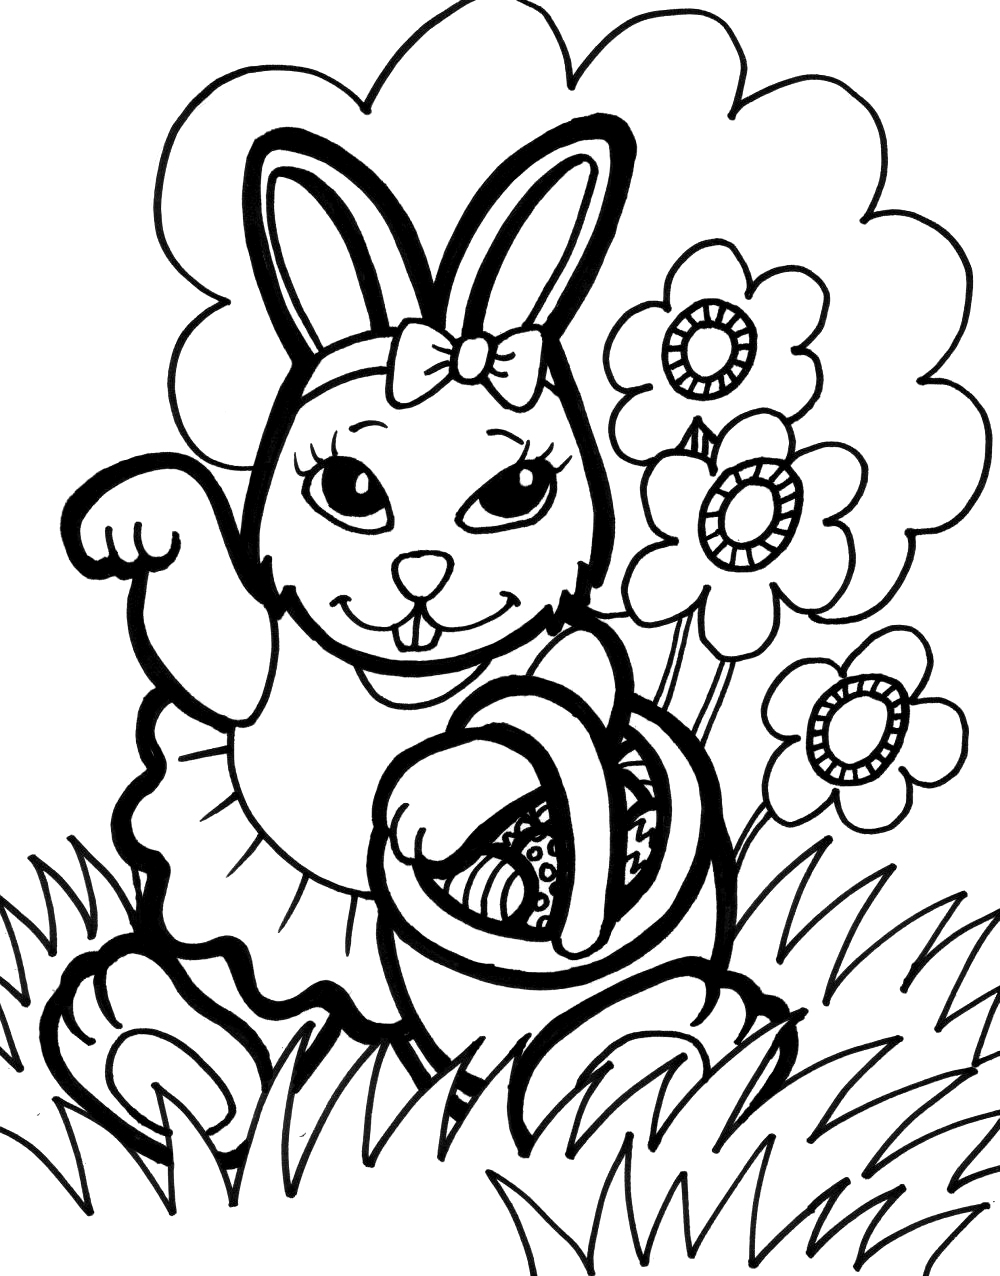 coloring kids rabbit bunny coloring pages best coloring pages for kids rabbit coloring kids 1 1